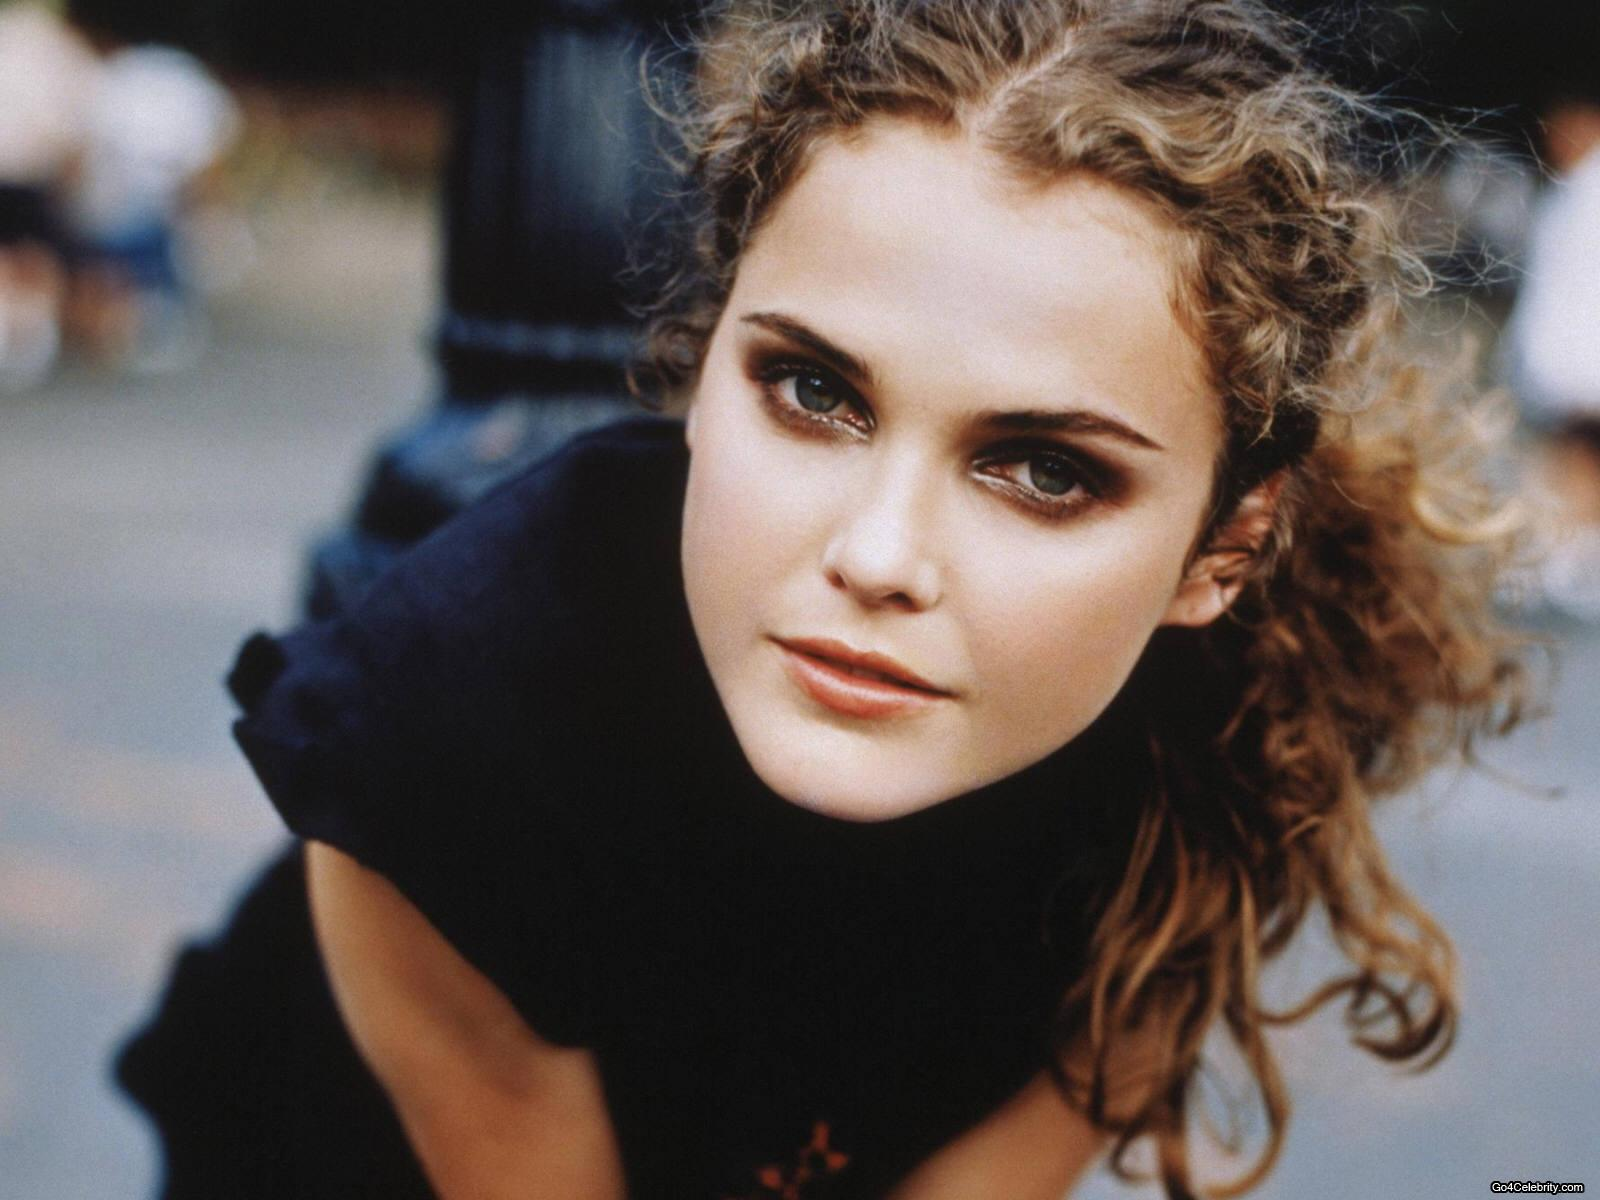 Keri Lynn Russell (born March 23, 1976) is an American actress and dancer. After appearing in a number of made-for-television films and series during the ...